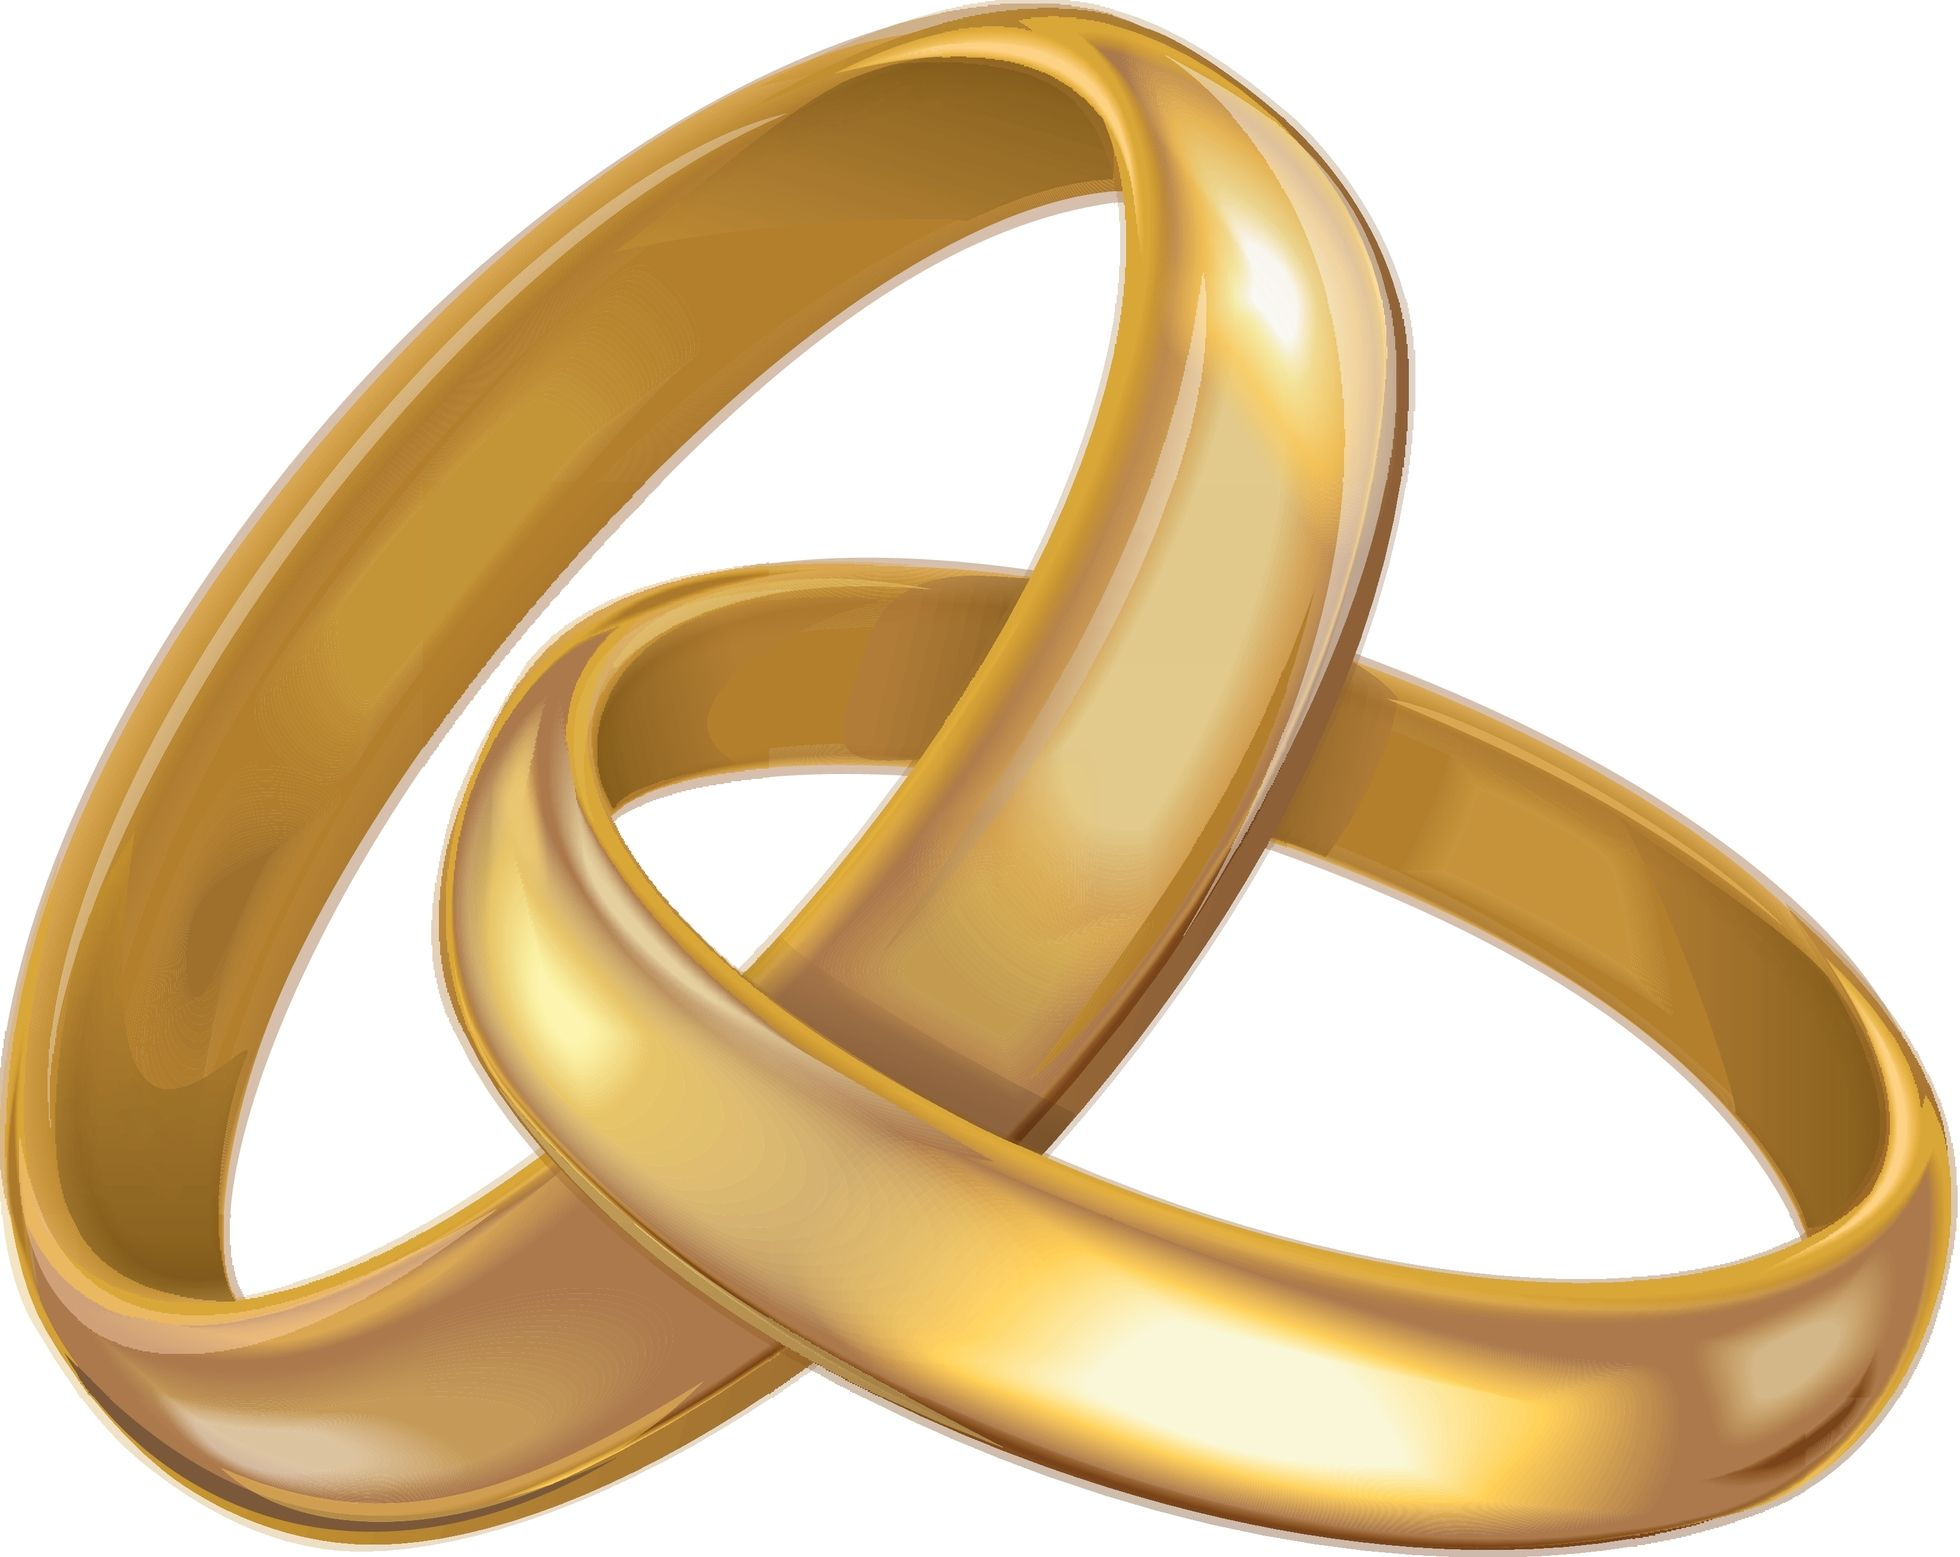 rings wedding Wedding bands sells wedding bands diamond anniversary rings and eternity bands for men and women